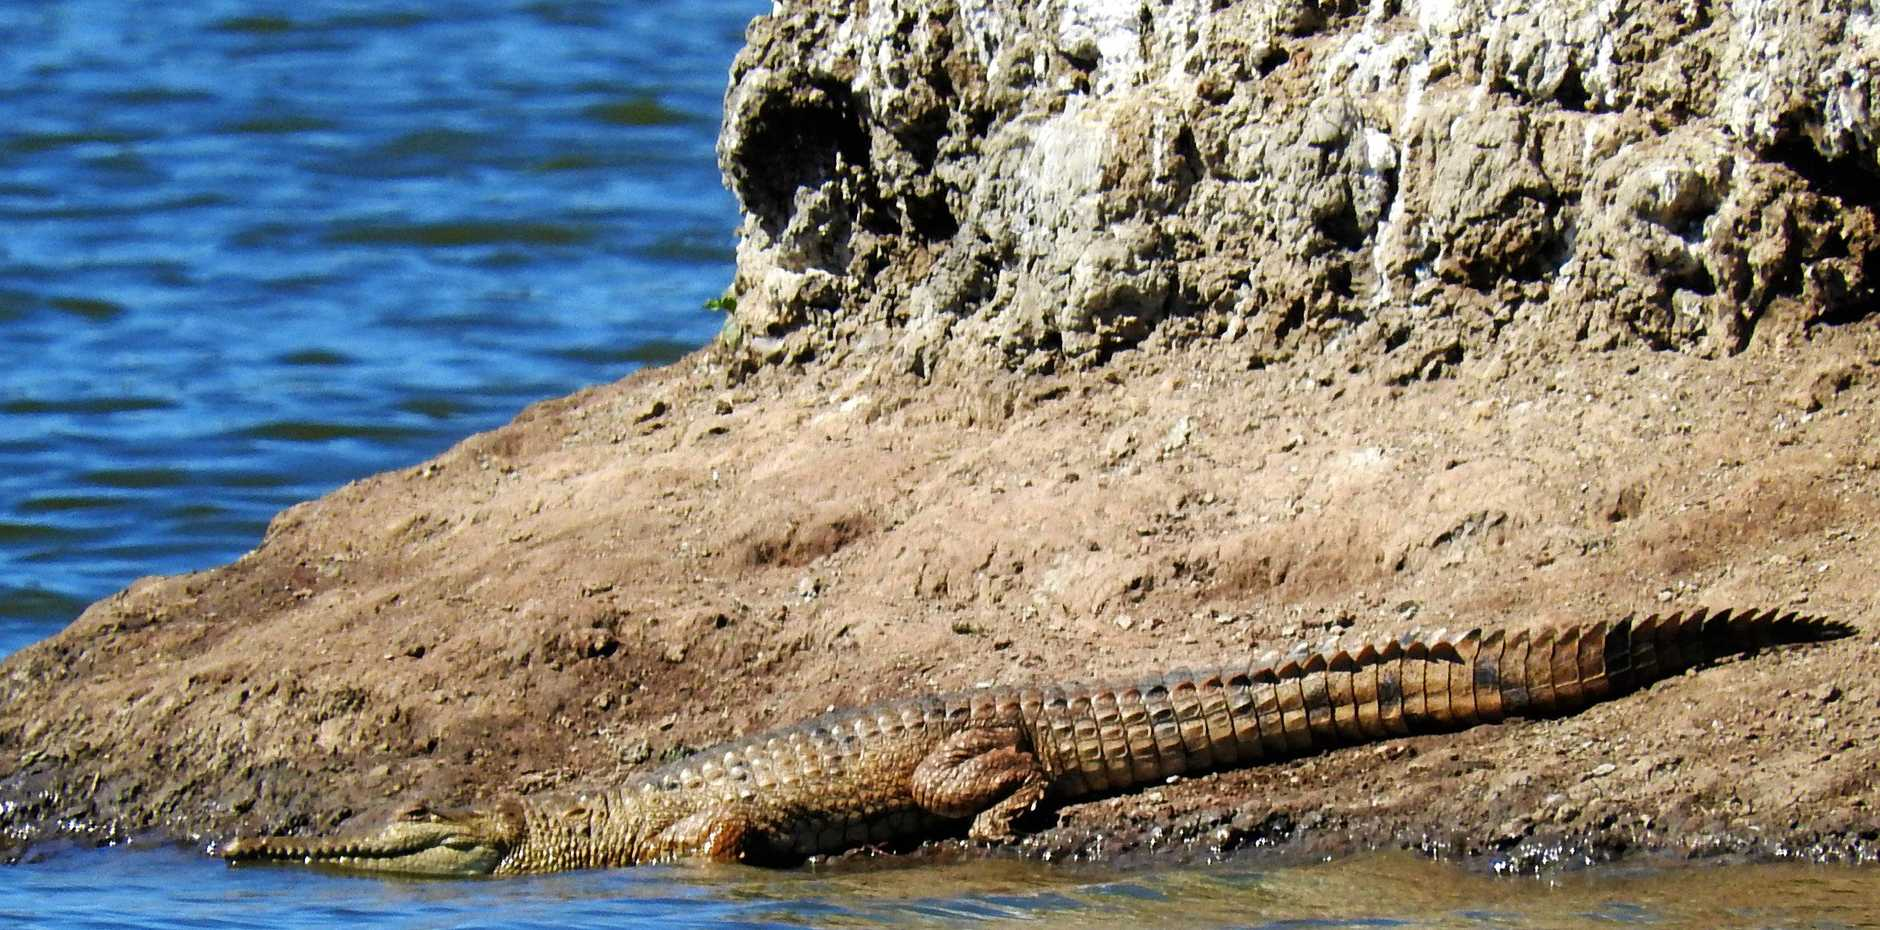 Here it is! The 1.5 metre croc spotted in Mullers Lagoon.